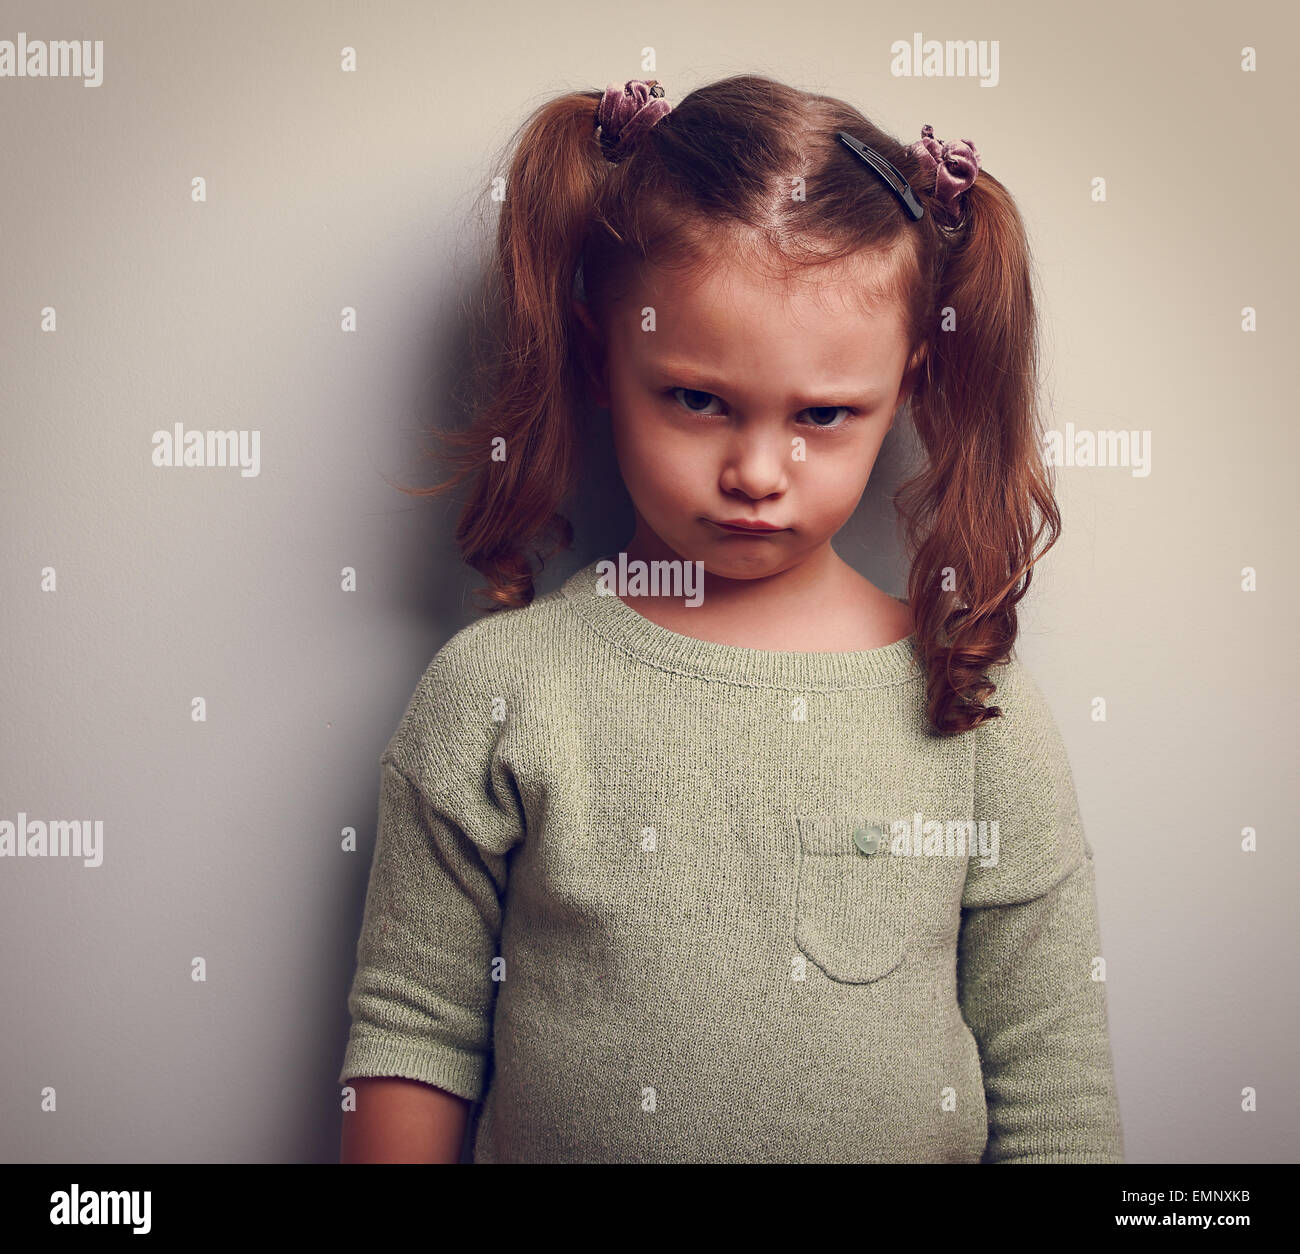 Upset angry girl looking with very emotion face. Closeup portrait - Stock Image